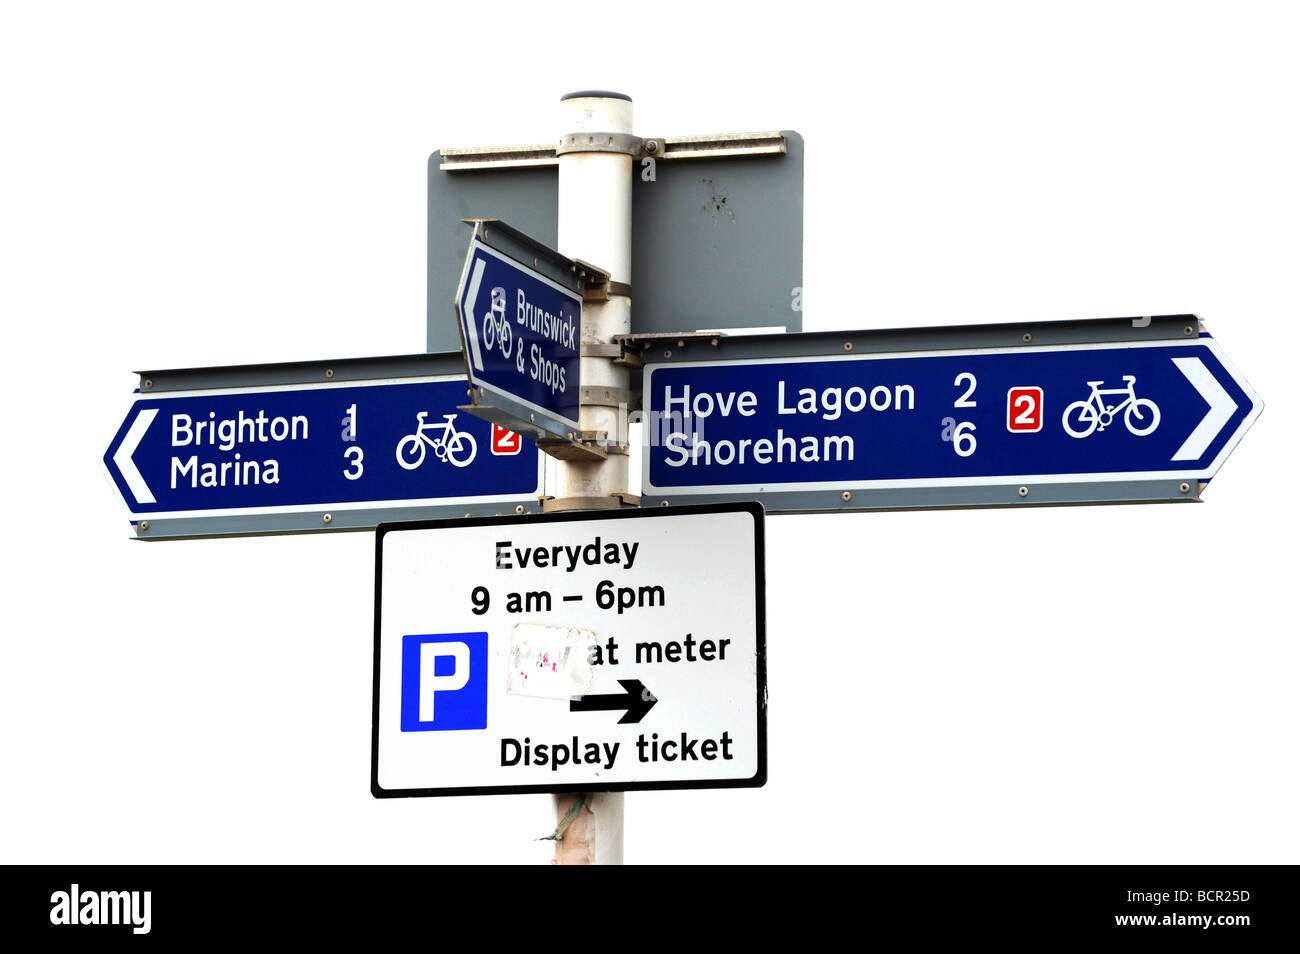 National cycle network signs on brighton sea front - Stock Image